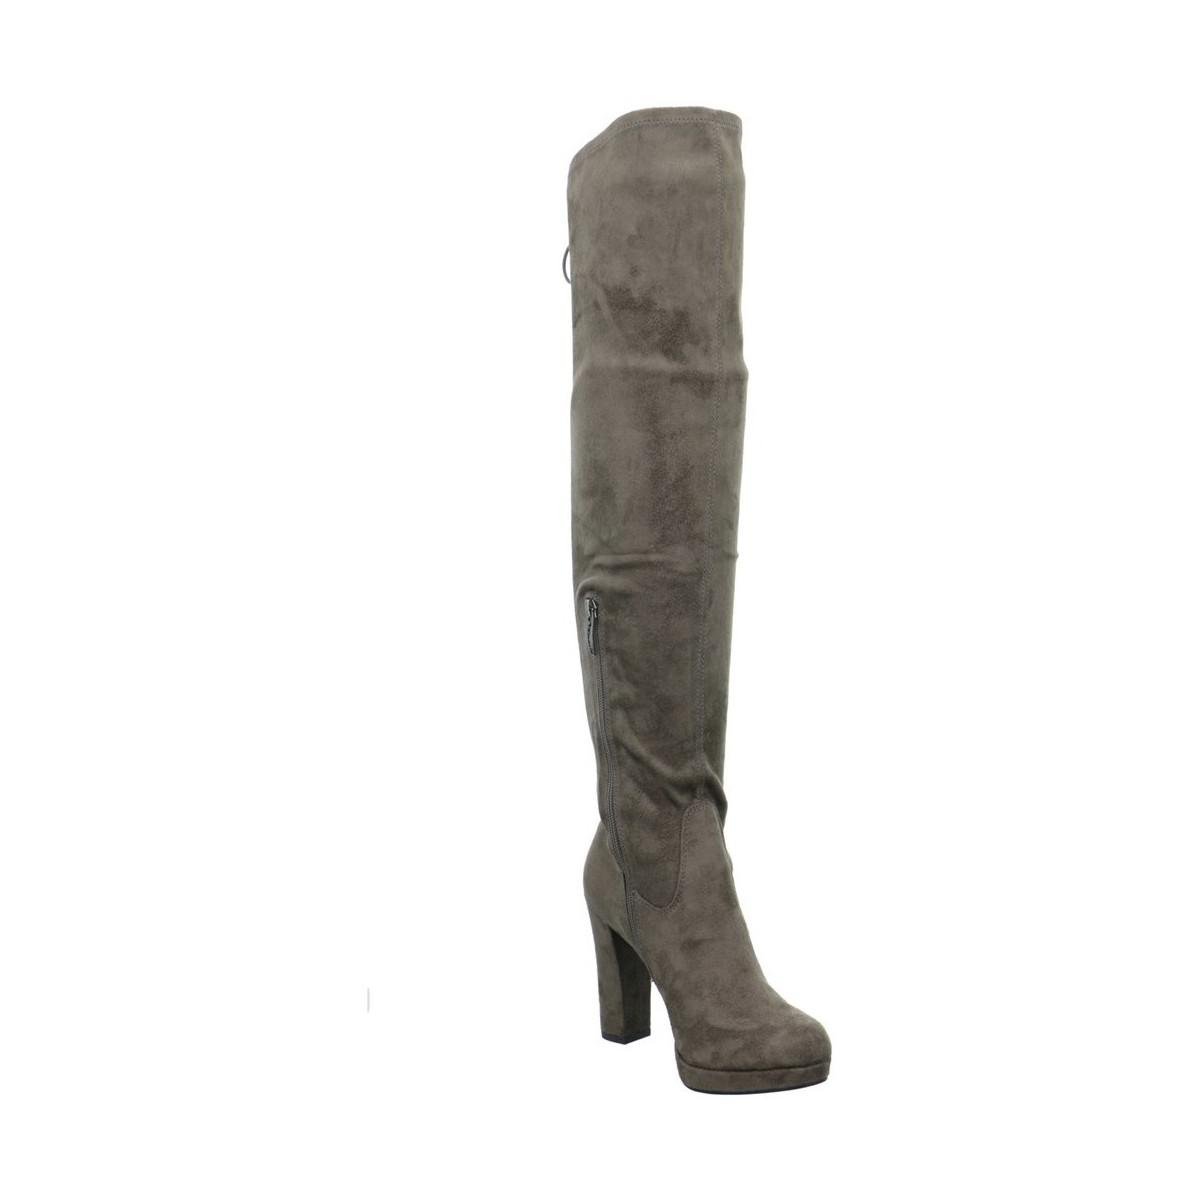 Overknee Boots Brown In Women's Tamaris Lycoris Lyst High SqIwHH4x5